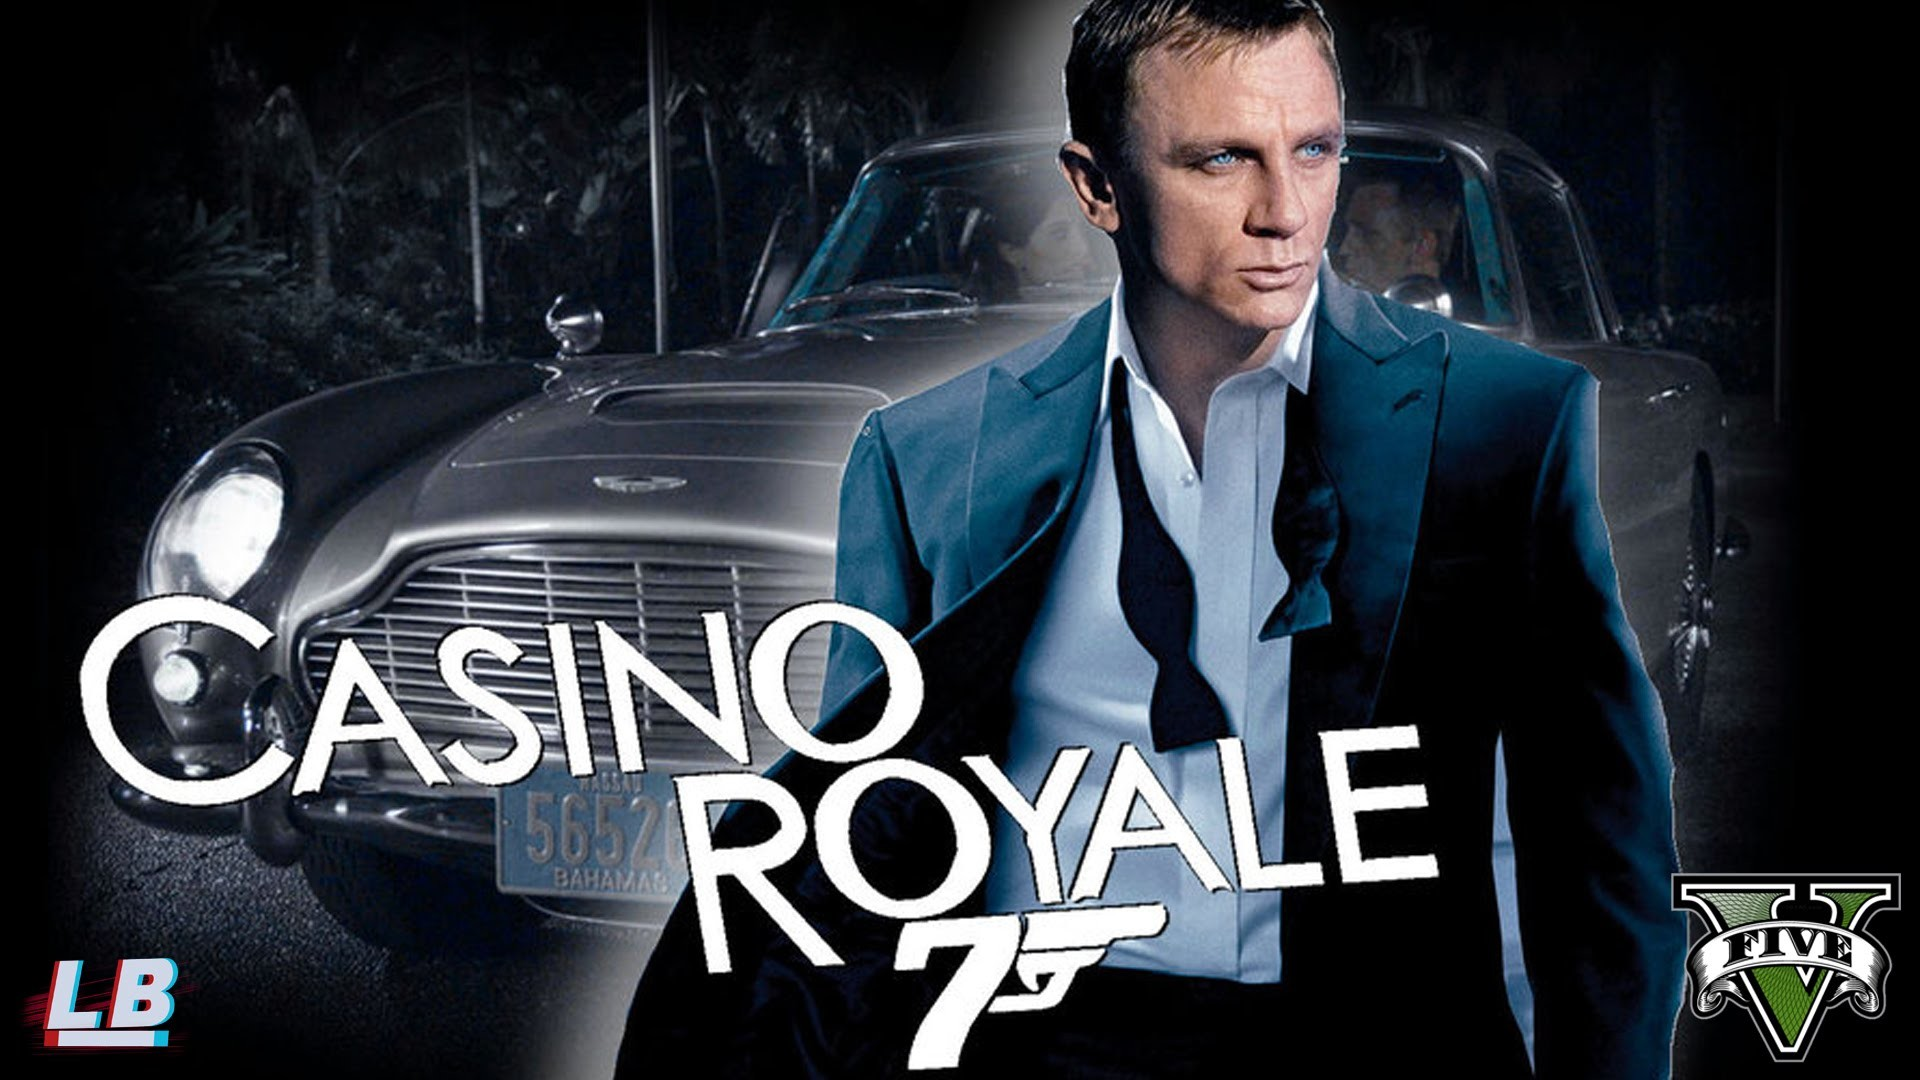 James Bond Casino Royal Online Stream